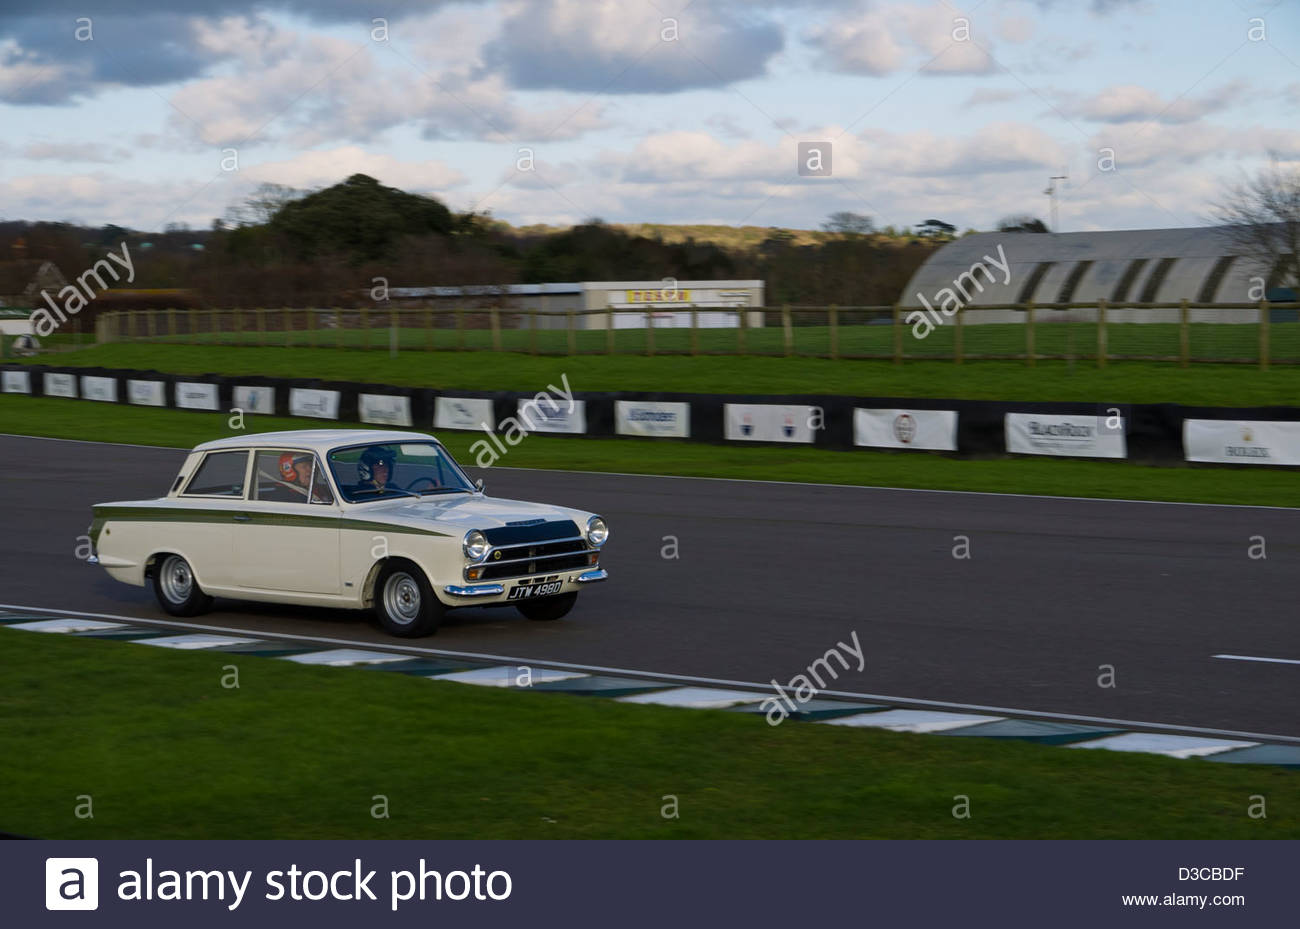 Lotus Cortina at speed Goodwood West Sussex England - Stock Image